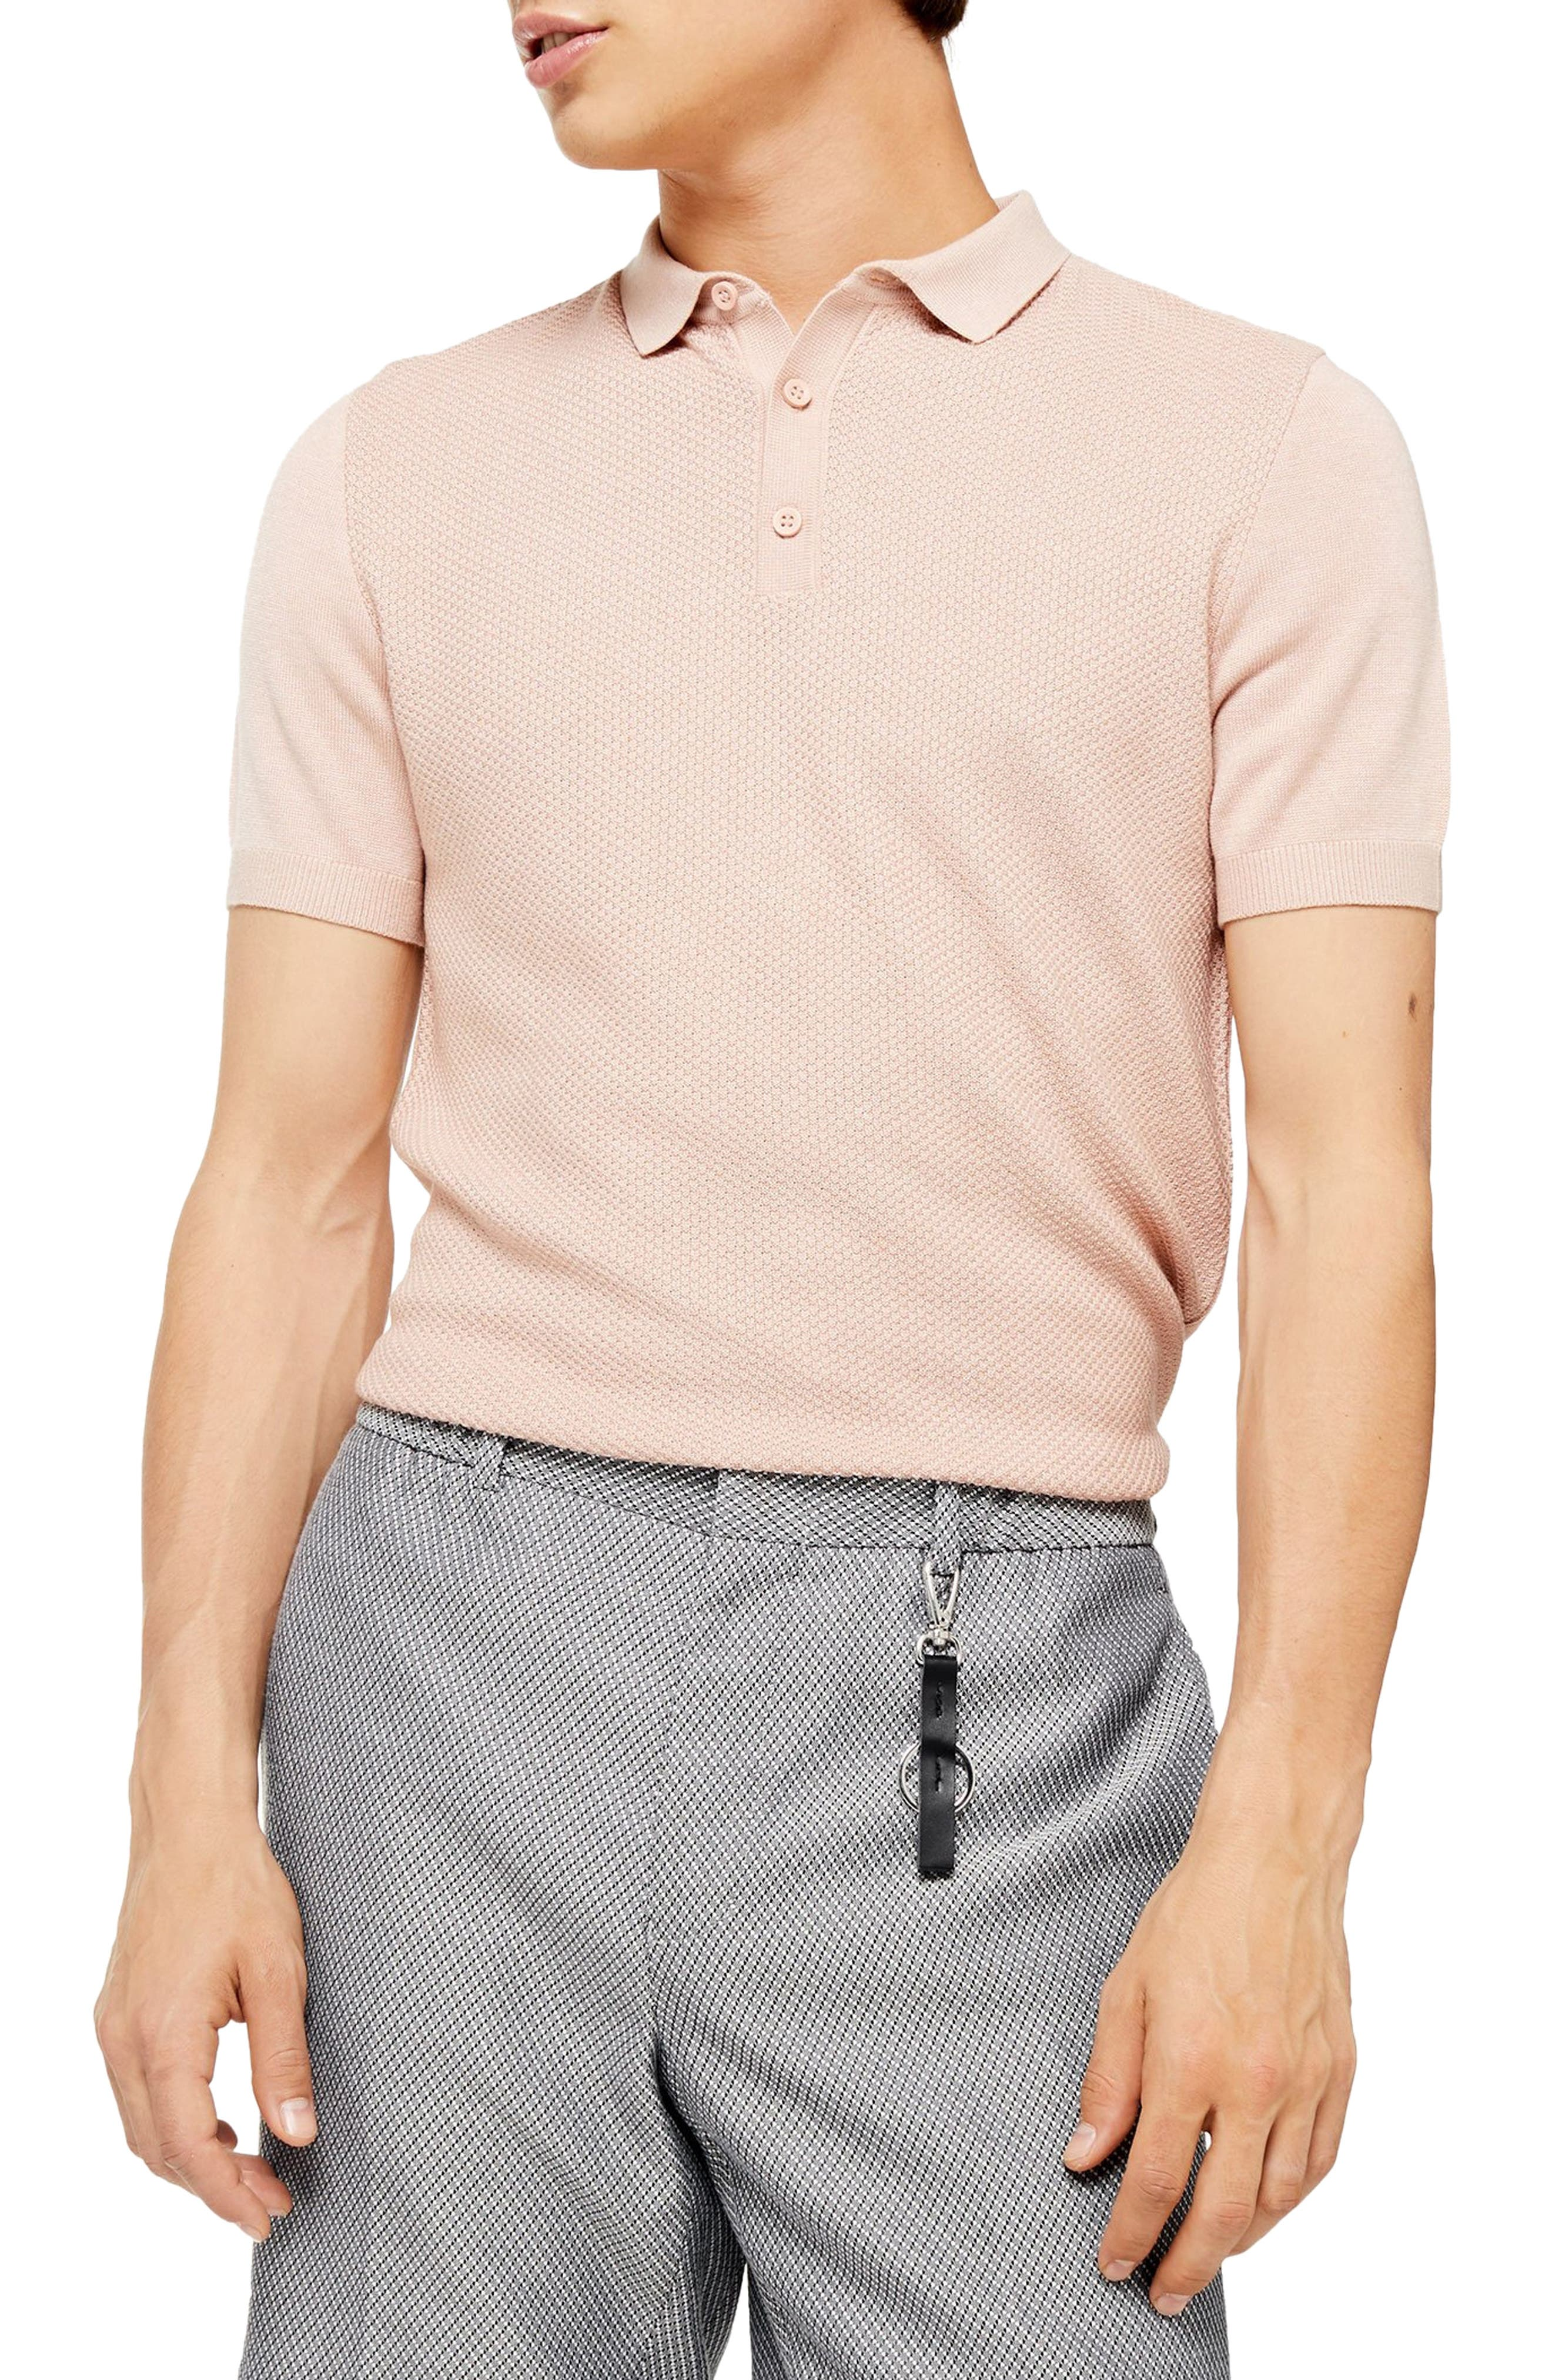 Vintage Shirts – Mens – Retro Shirts Mens Topman Classic Sweater Polo Shirt Size Small - Pink $45.00 AT vintagedancer.com